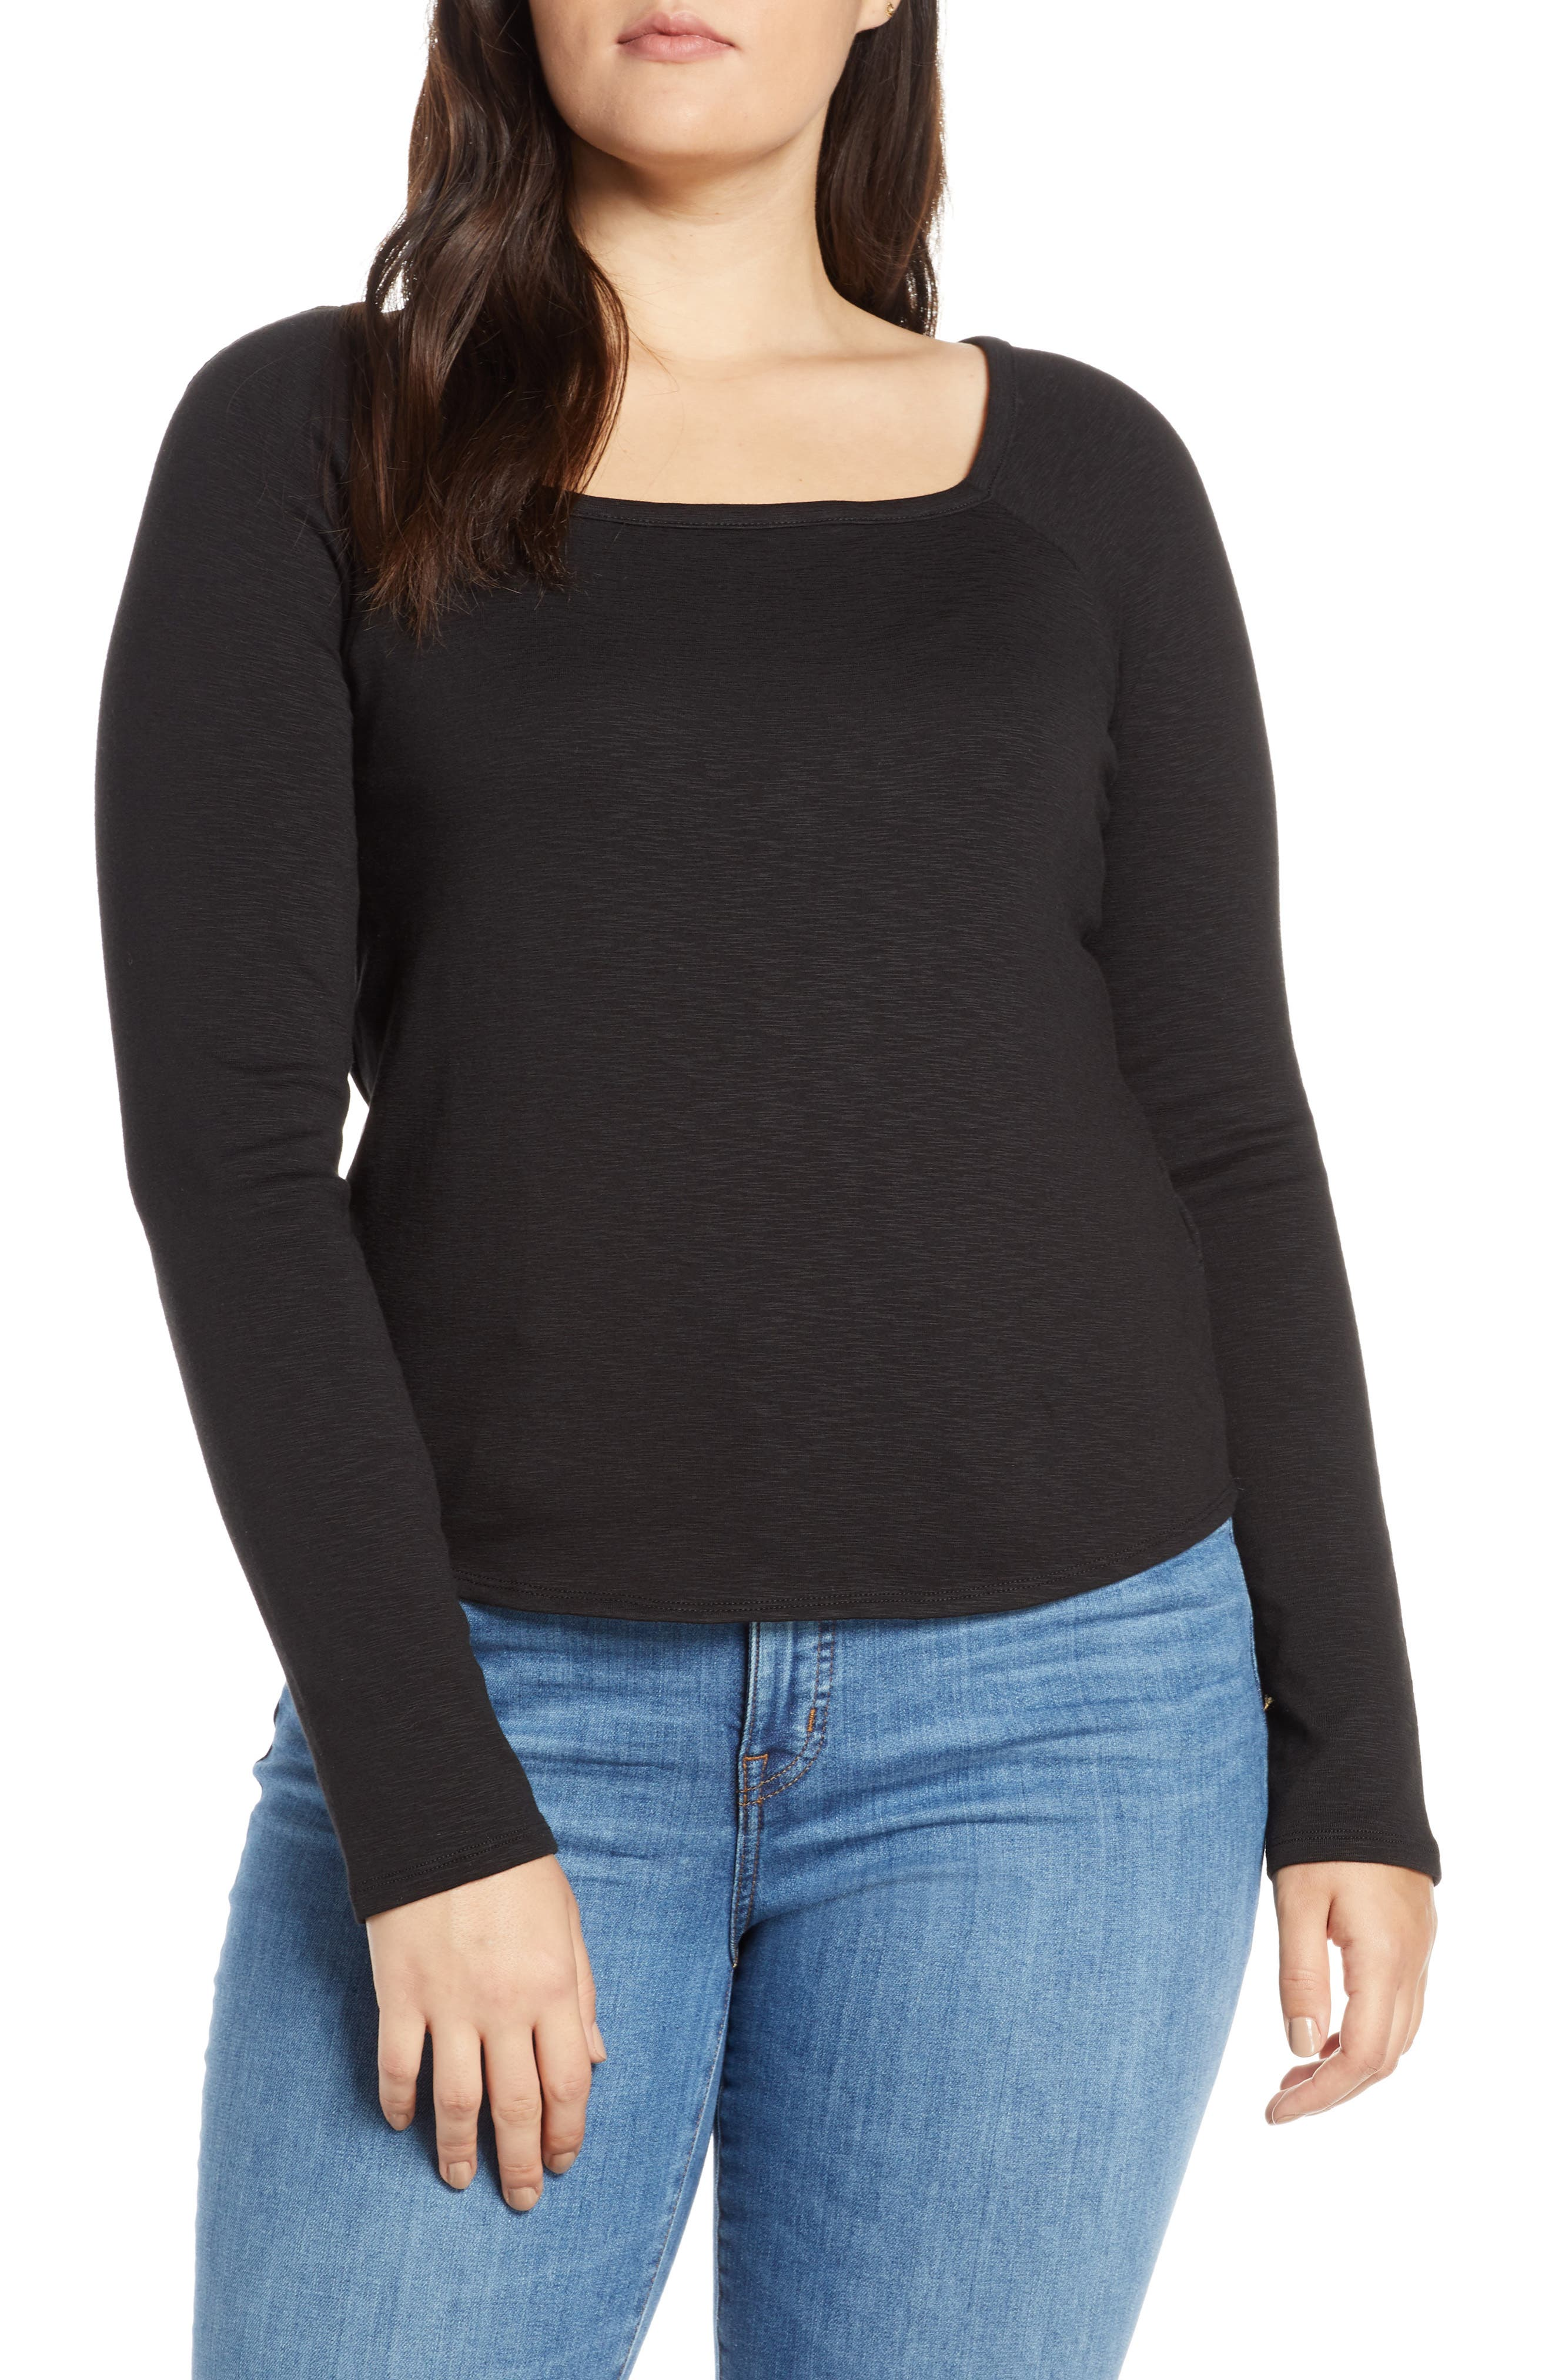 MADEWELL, Square Neck Long Sleeve Tee, Alternate thumbnail 2, color, TRUE BLACK